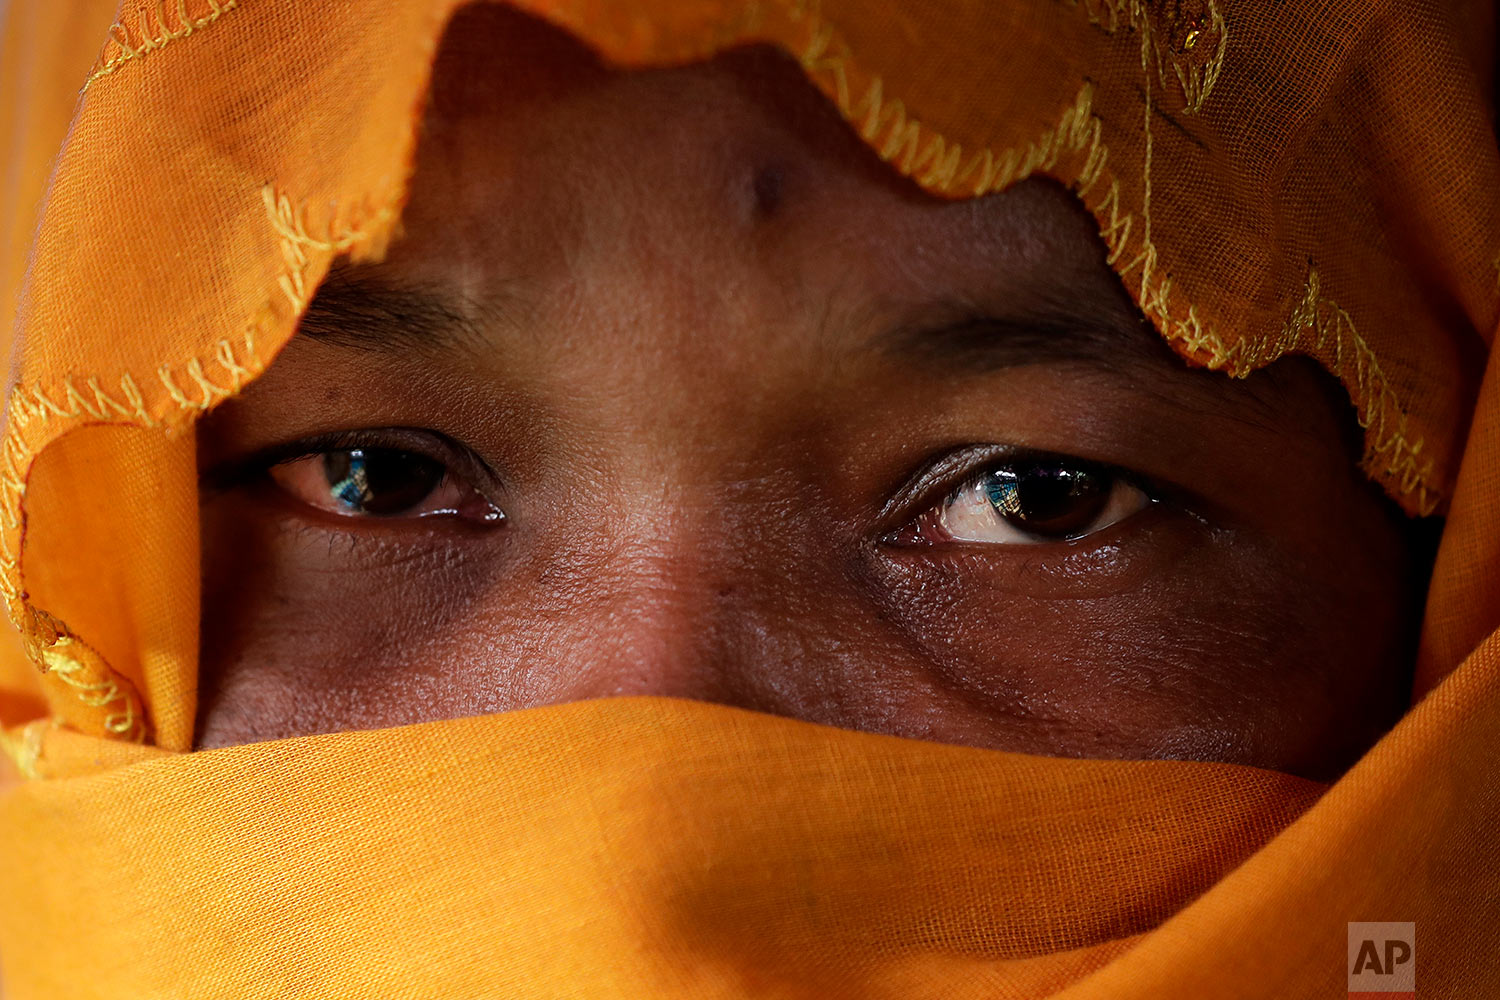 In this Wednesday, Nov. 22, 2017, photo, R, 28, mother of six, who says she was raped by members of Myanmar's armed forces in late August, is photographed in her tent in Kutupalong refugee camp in Bangladesh.  (AP Photo/Wong Maye-E)